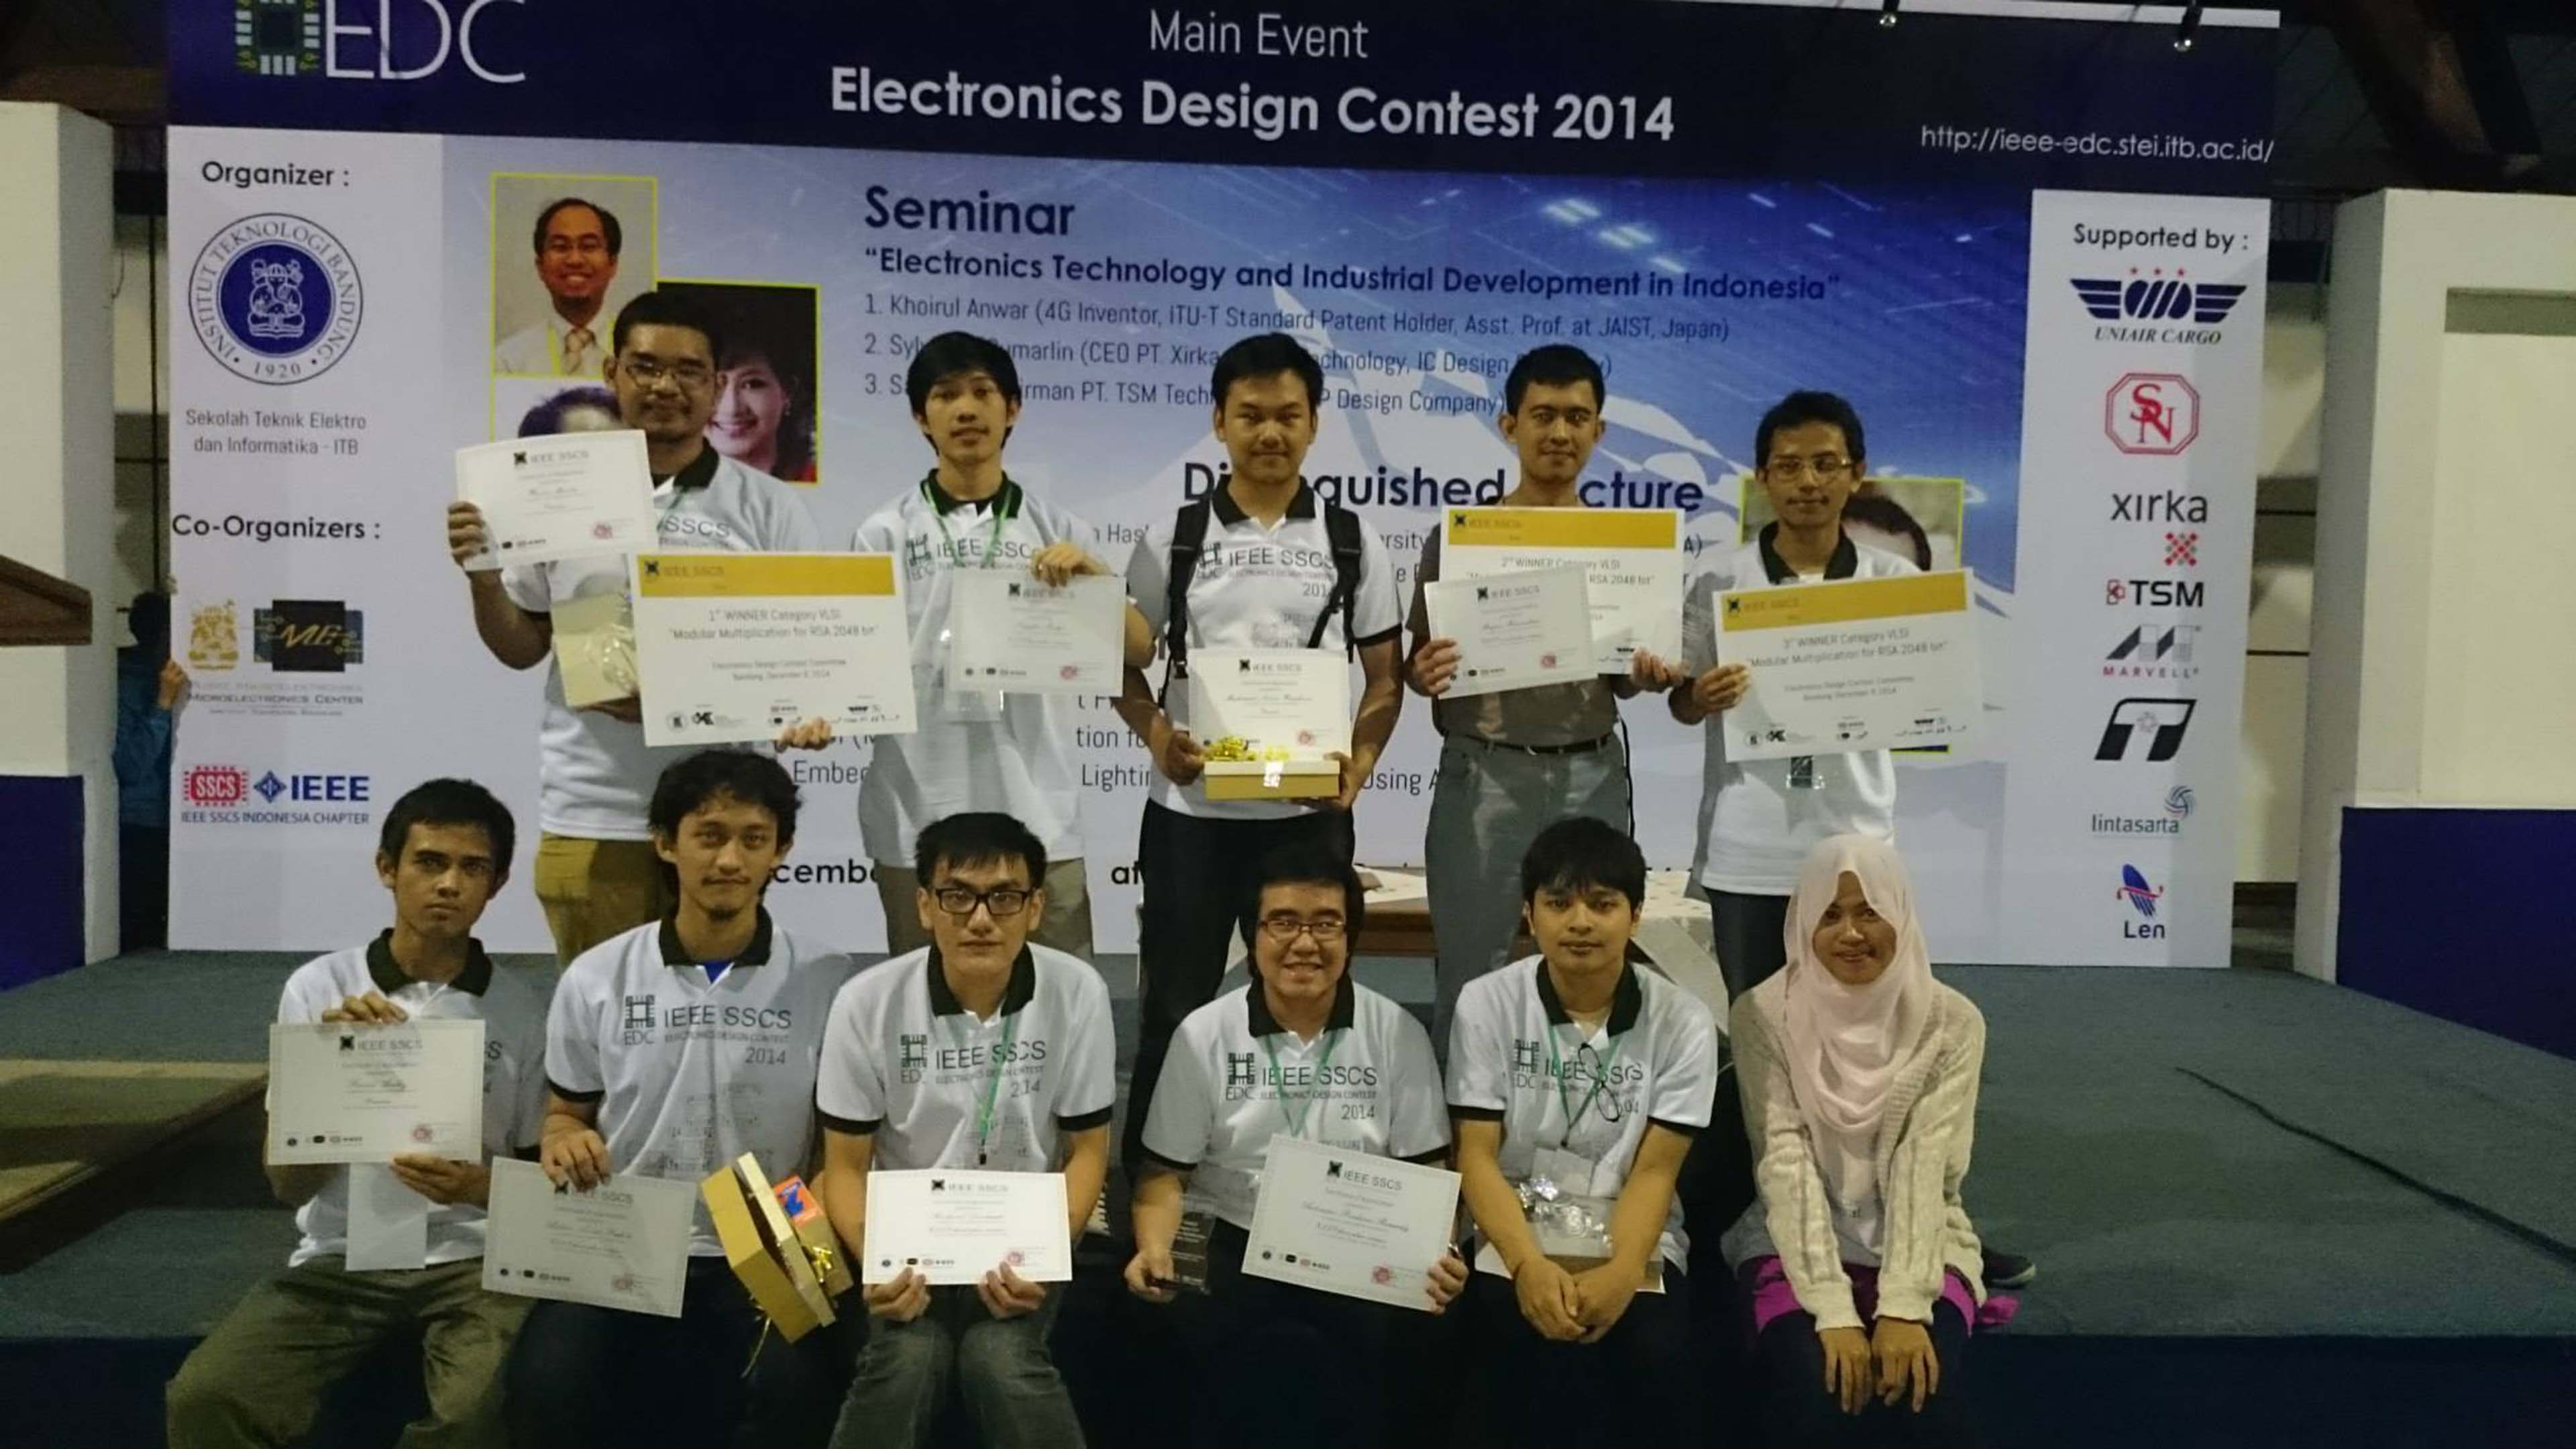 Winner of Electronic Design Contest 2014